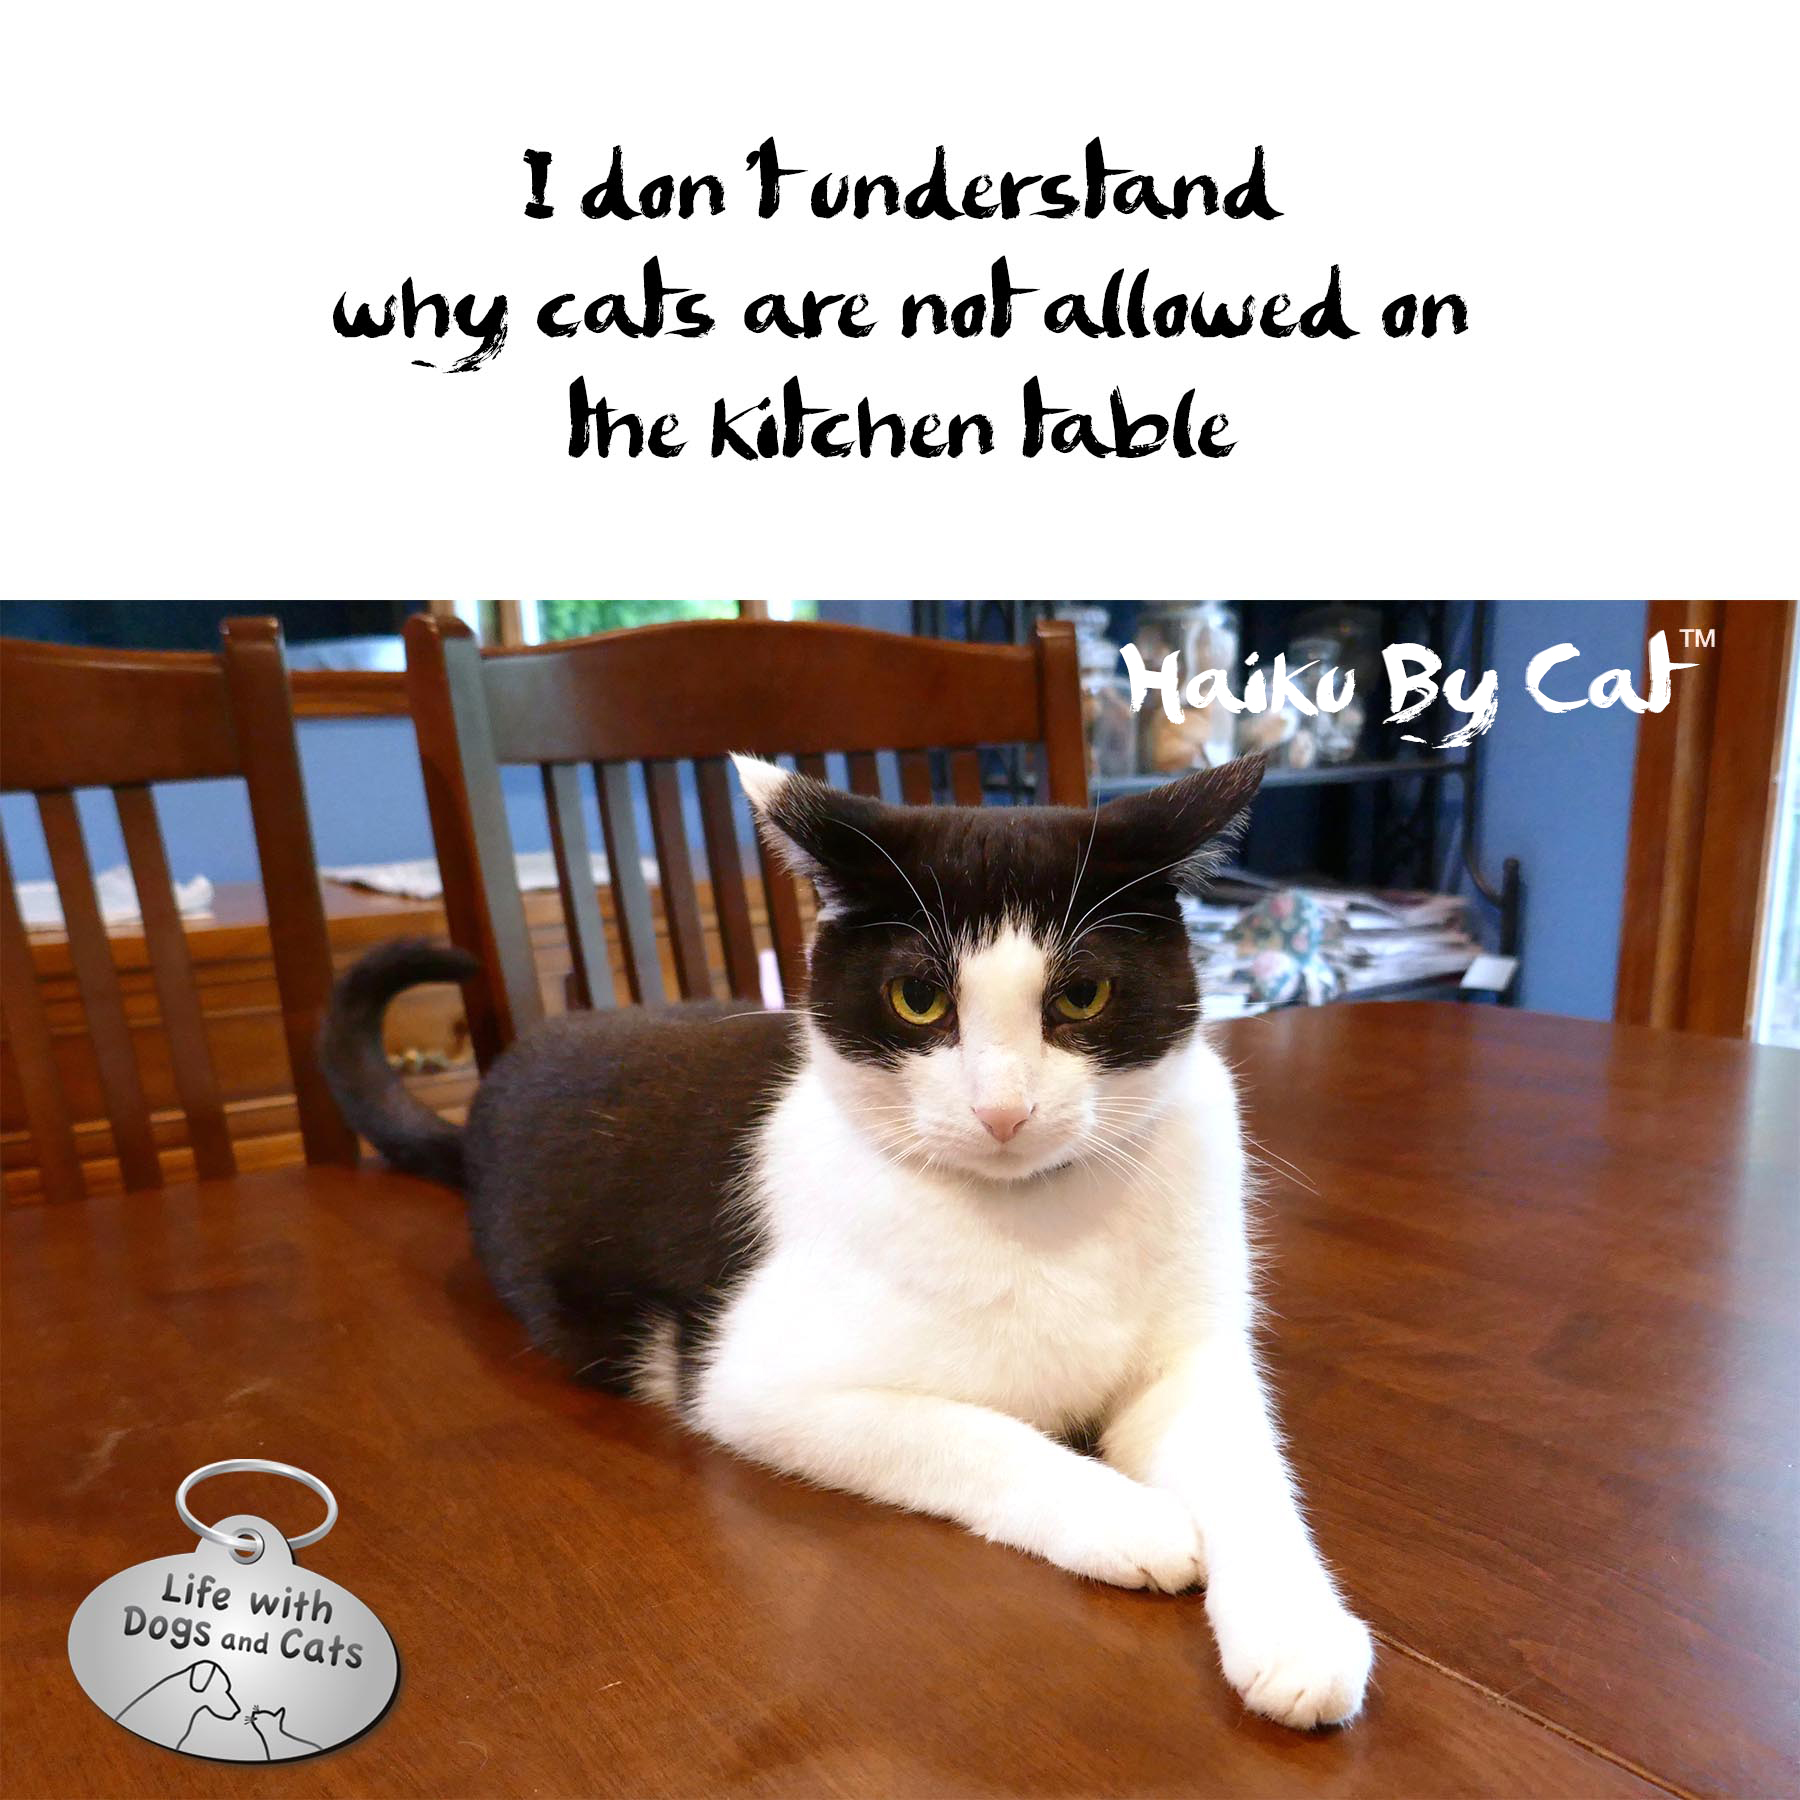 #haikubycat I don't understand / why cats are not allowed on / the kitchen table